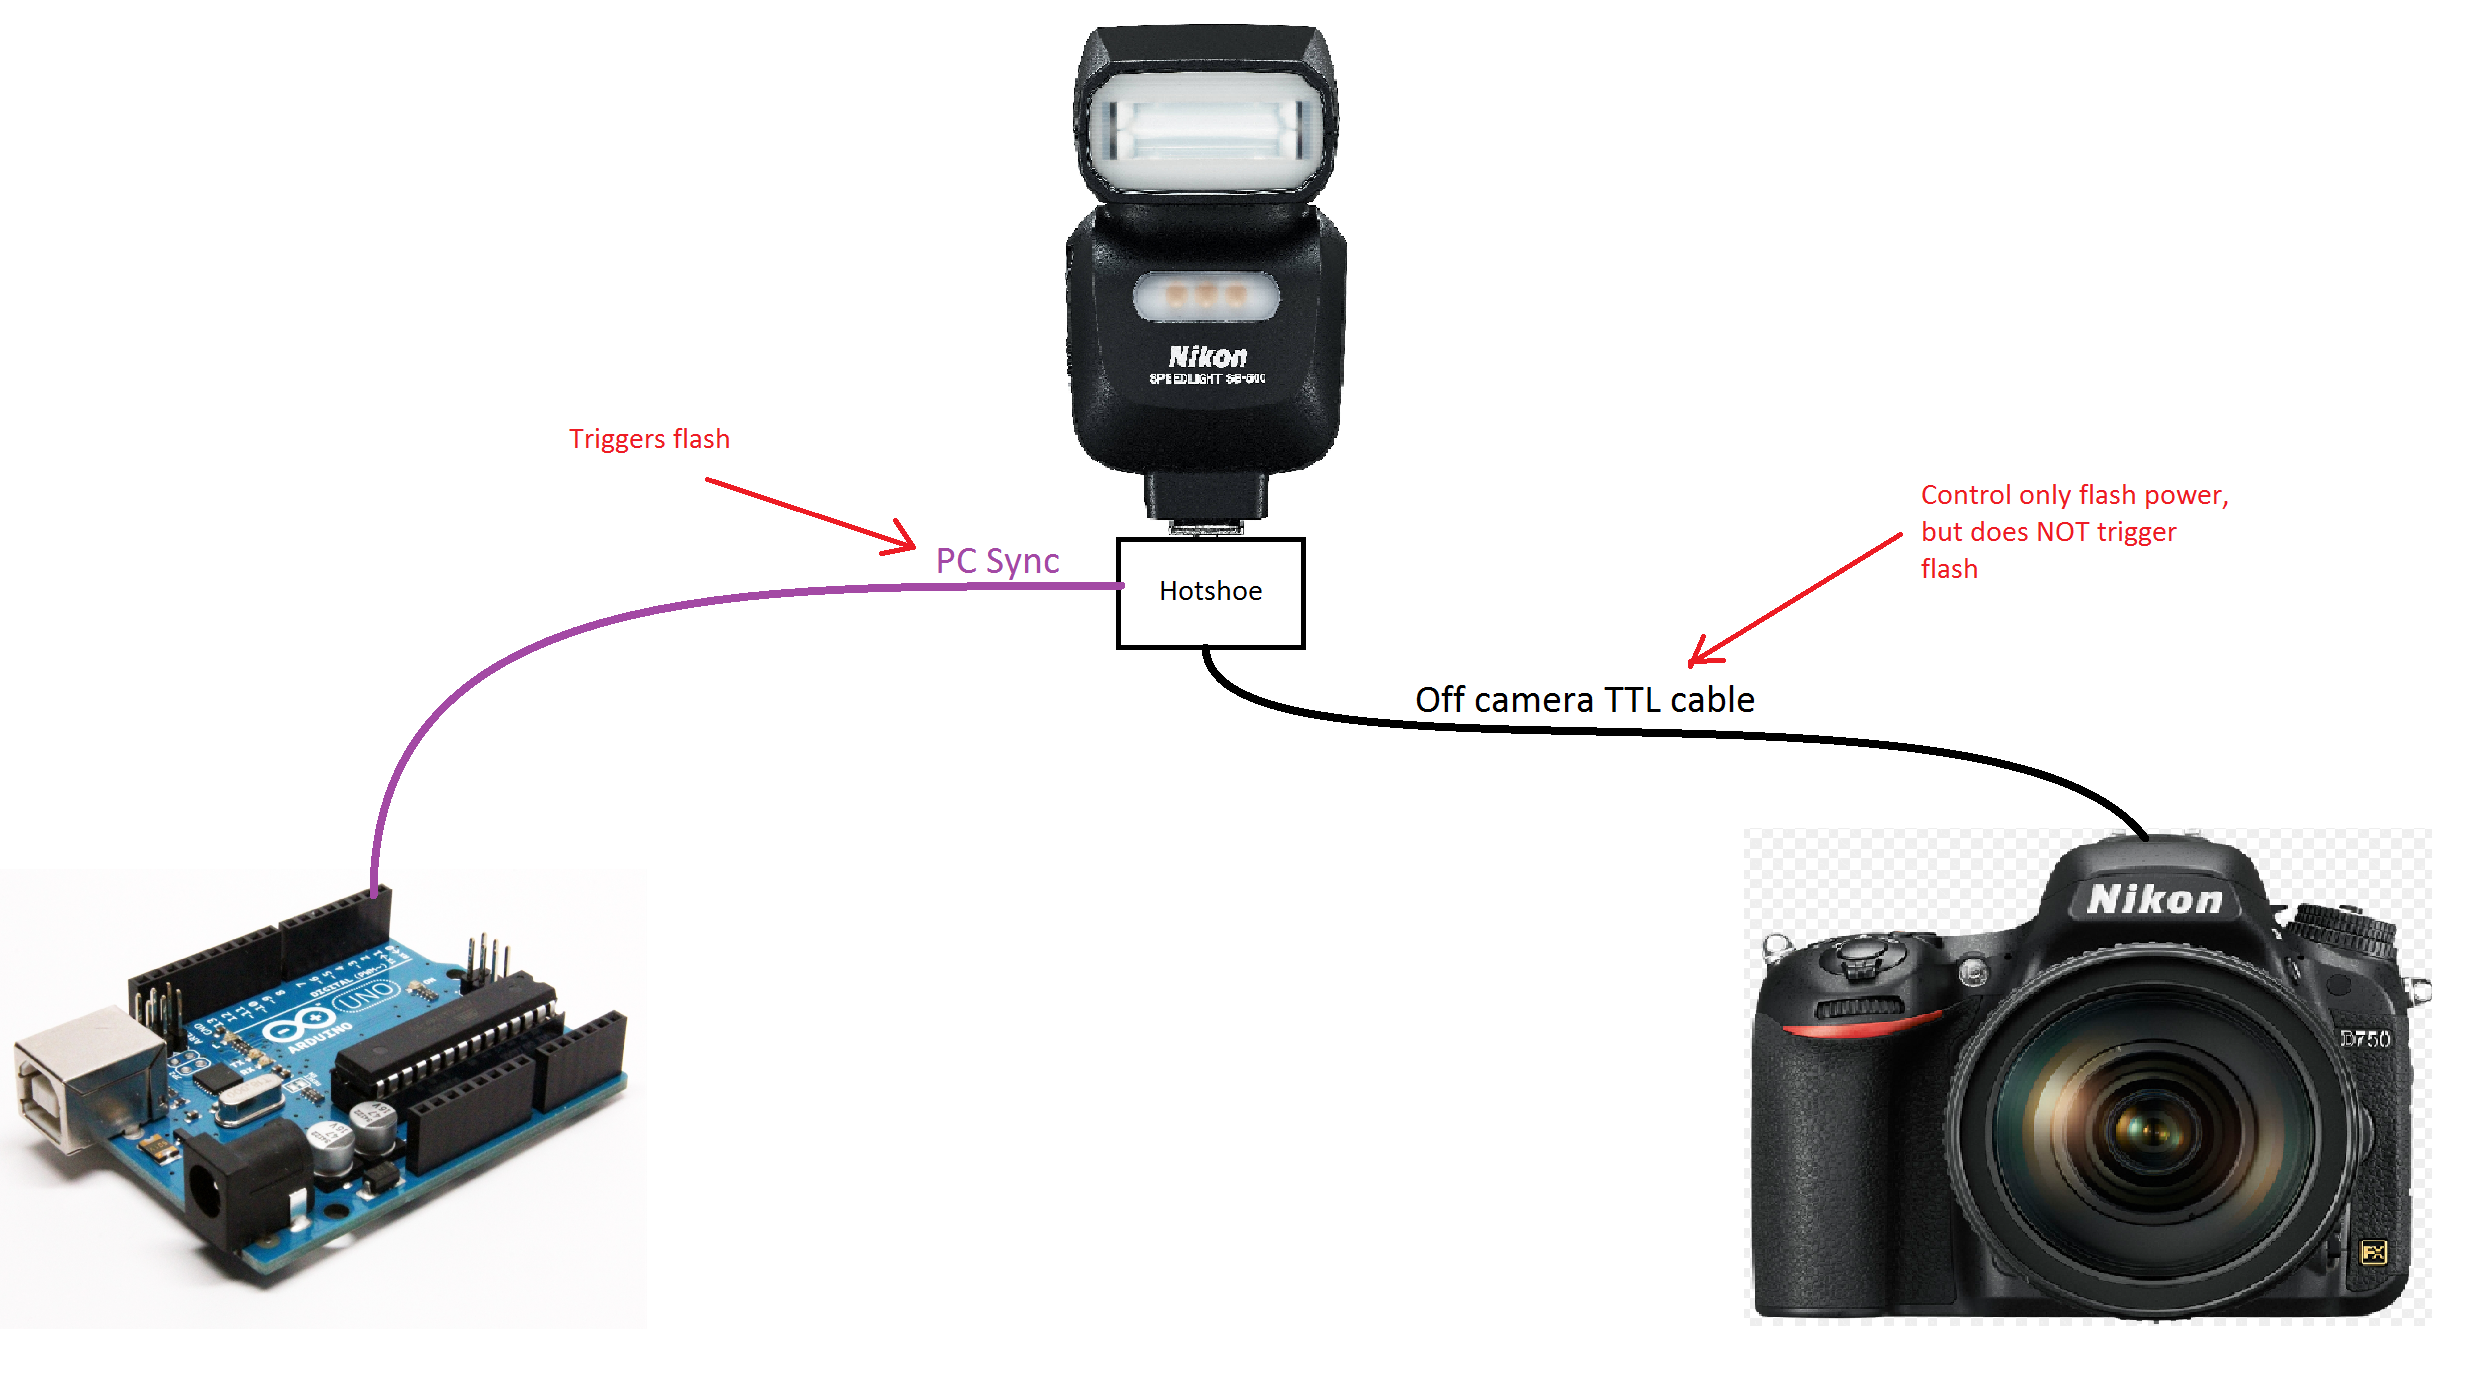 Nikon SB500 off-camera manual power control: Studio and